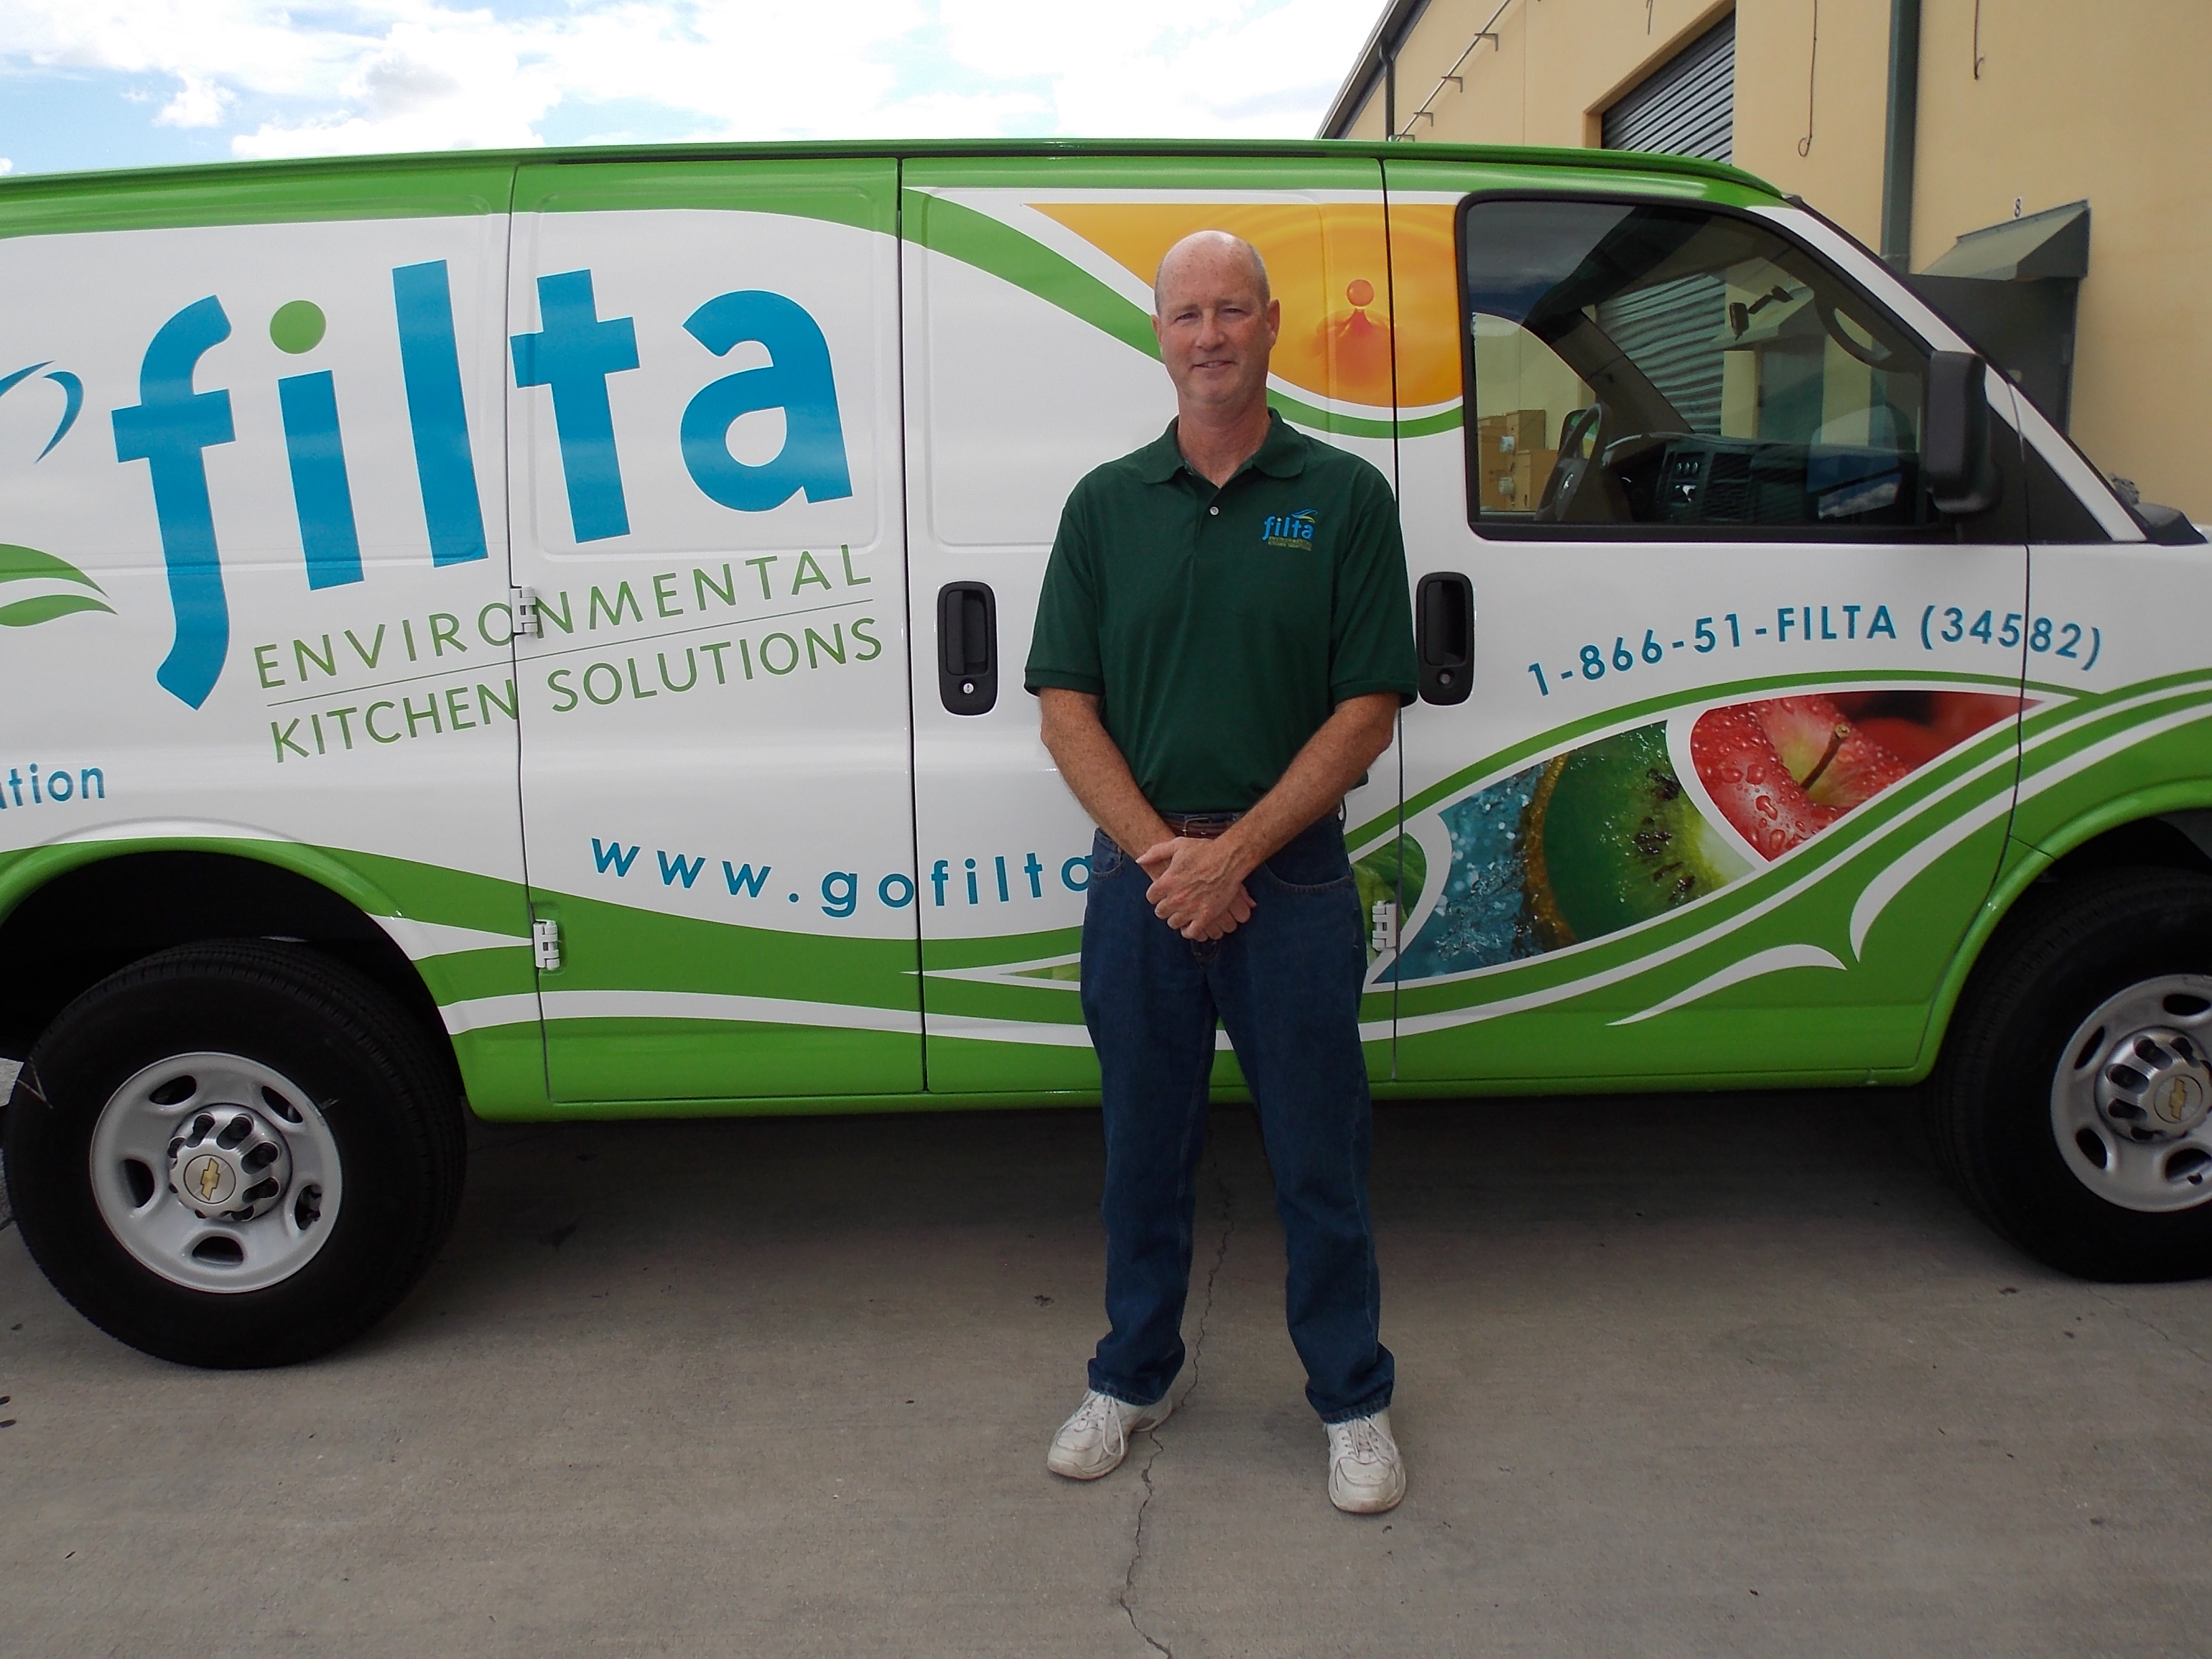 filta environmental kitchen solutions franchise now offers eco